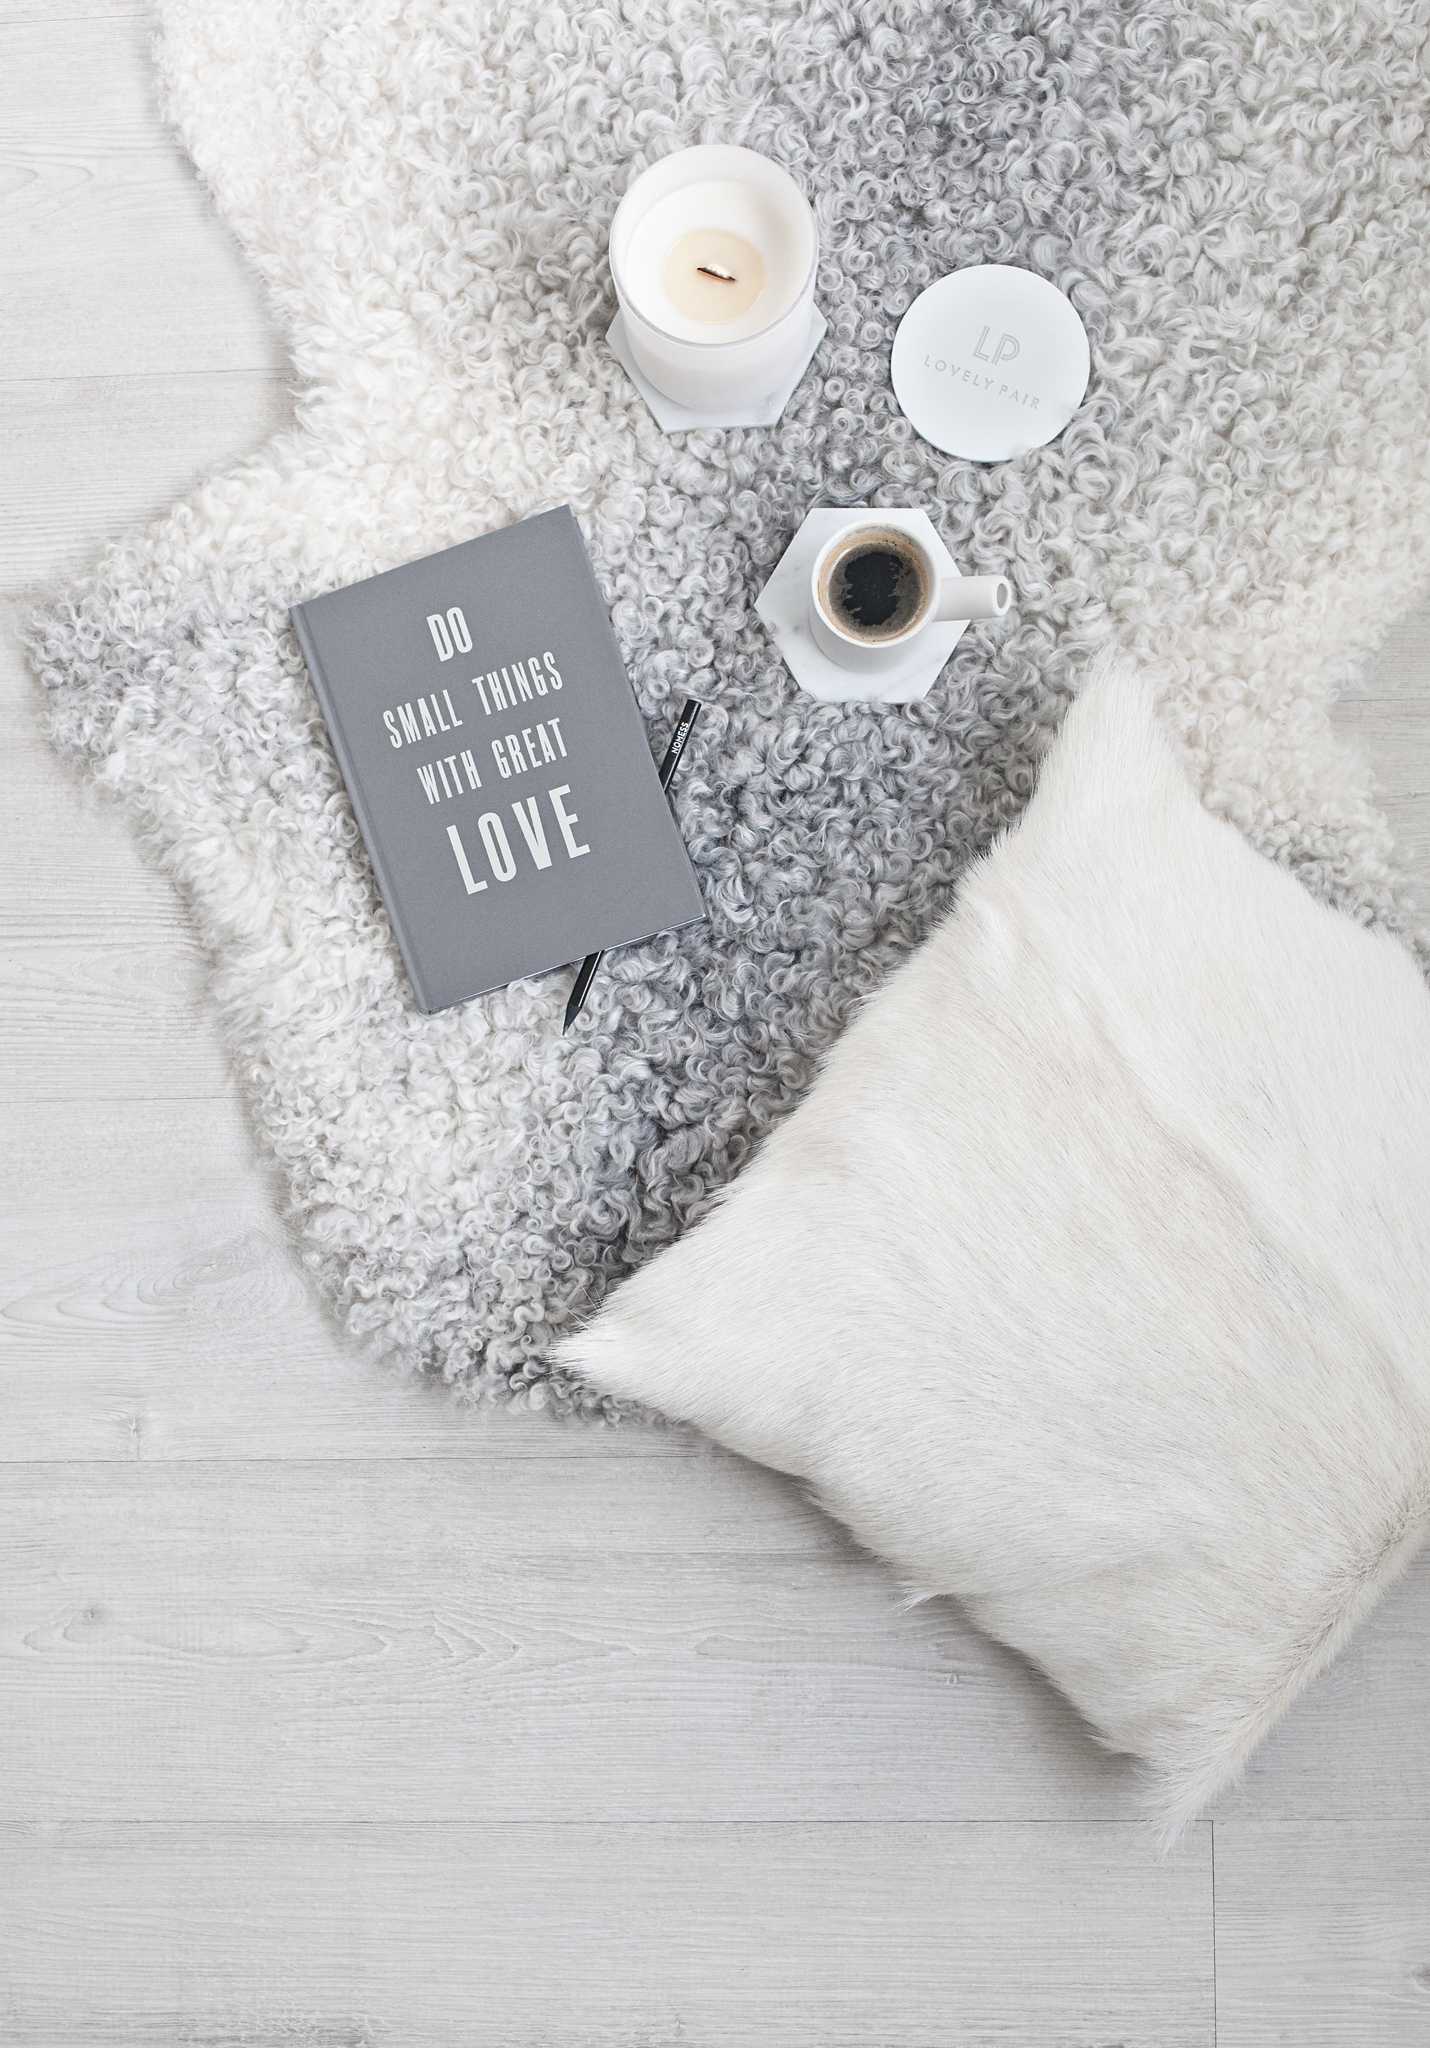 Lovely Pair  White VOGUE Candle |   Milabert   Gotland Sheepskin Rug & Cushion |   Serax   white Catherine Lovatt ceramic cup | Notebook from The White Company